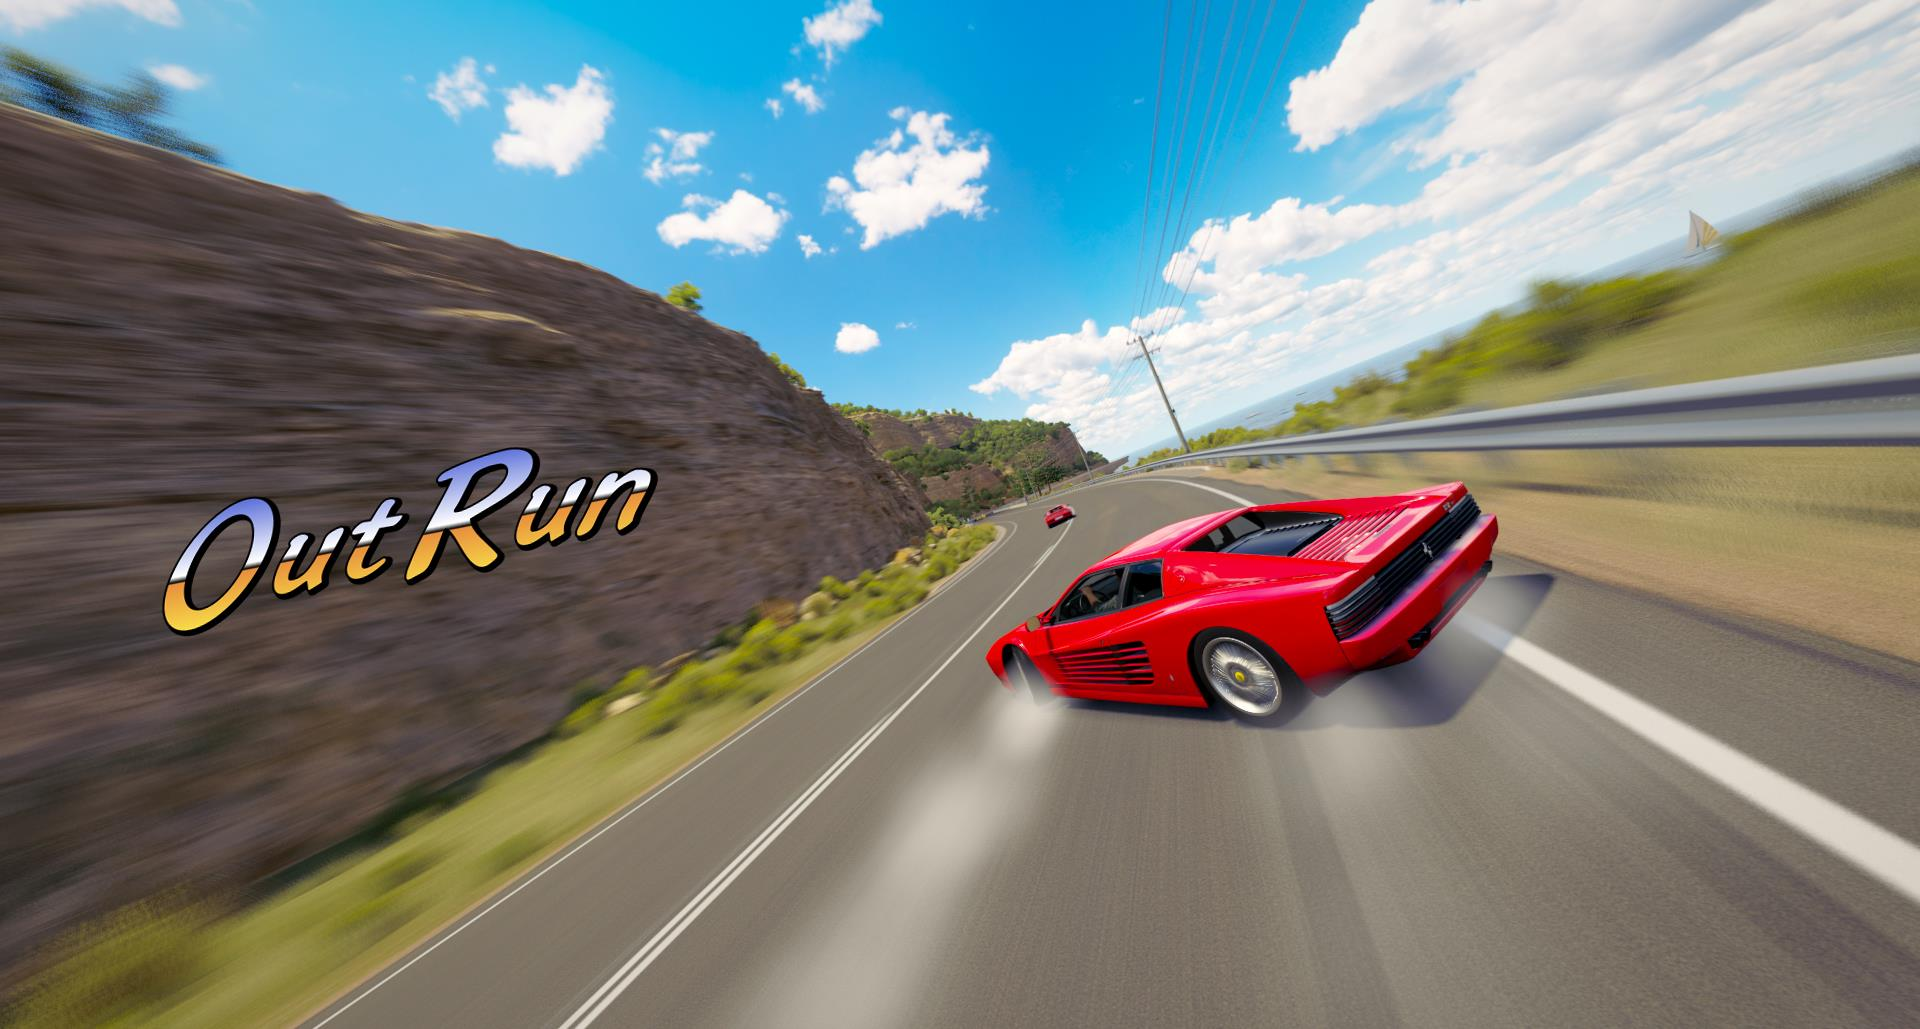 Forza fan pays tribute to iconic racing games in Forza Horizon 3